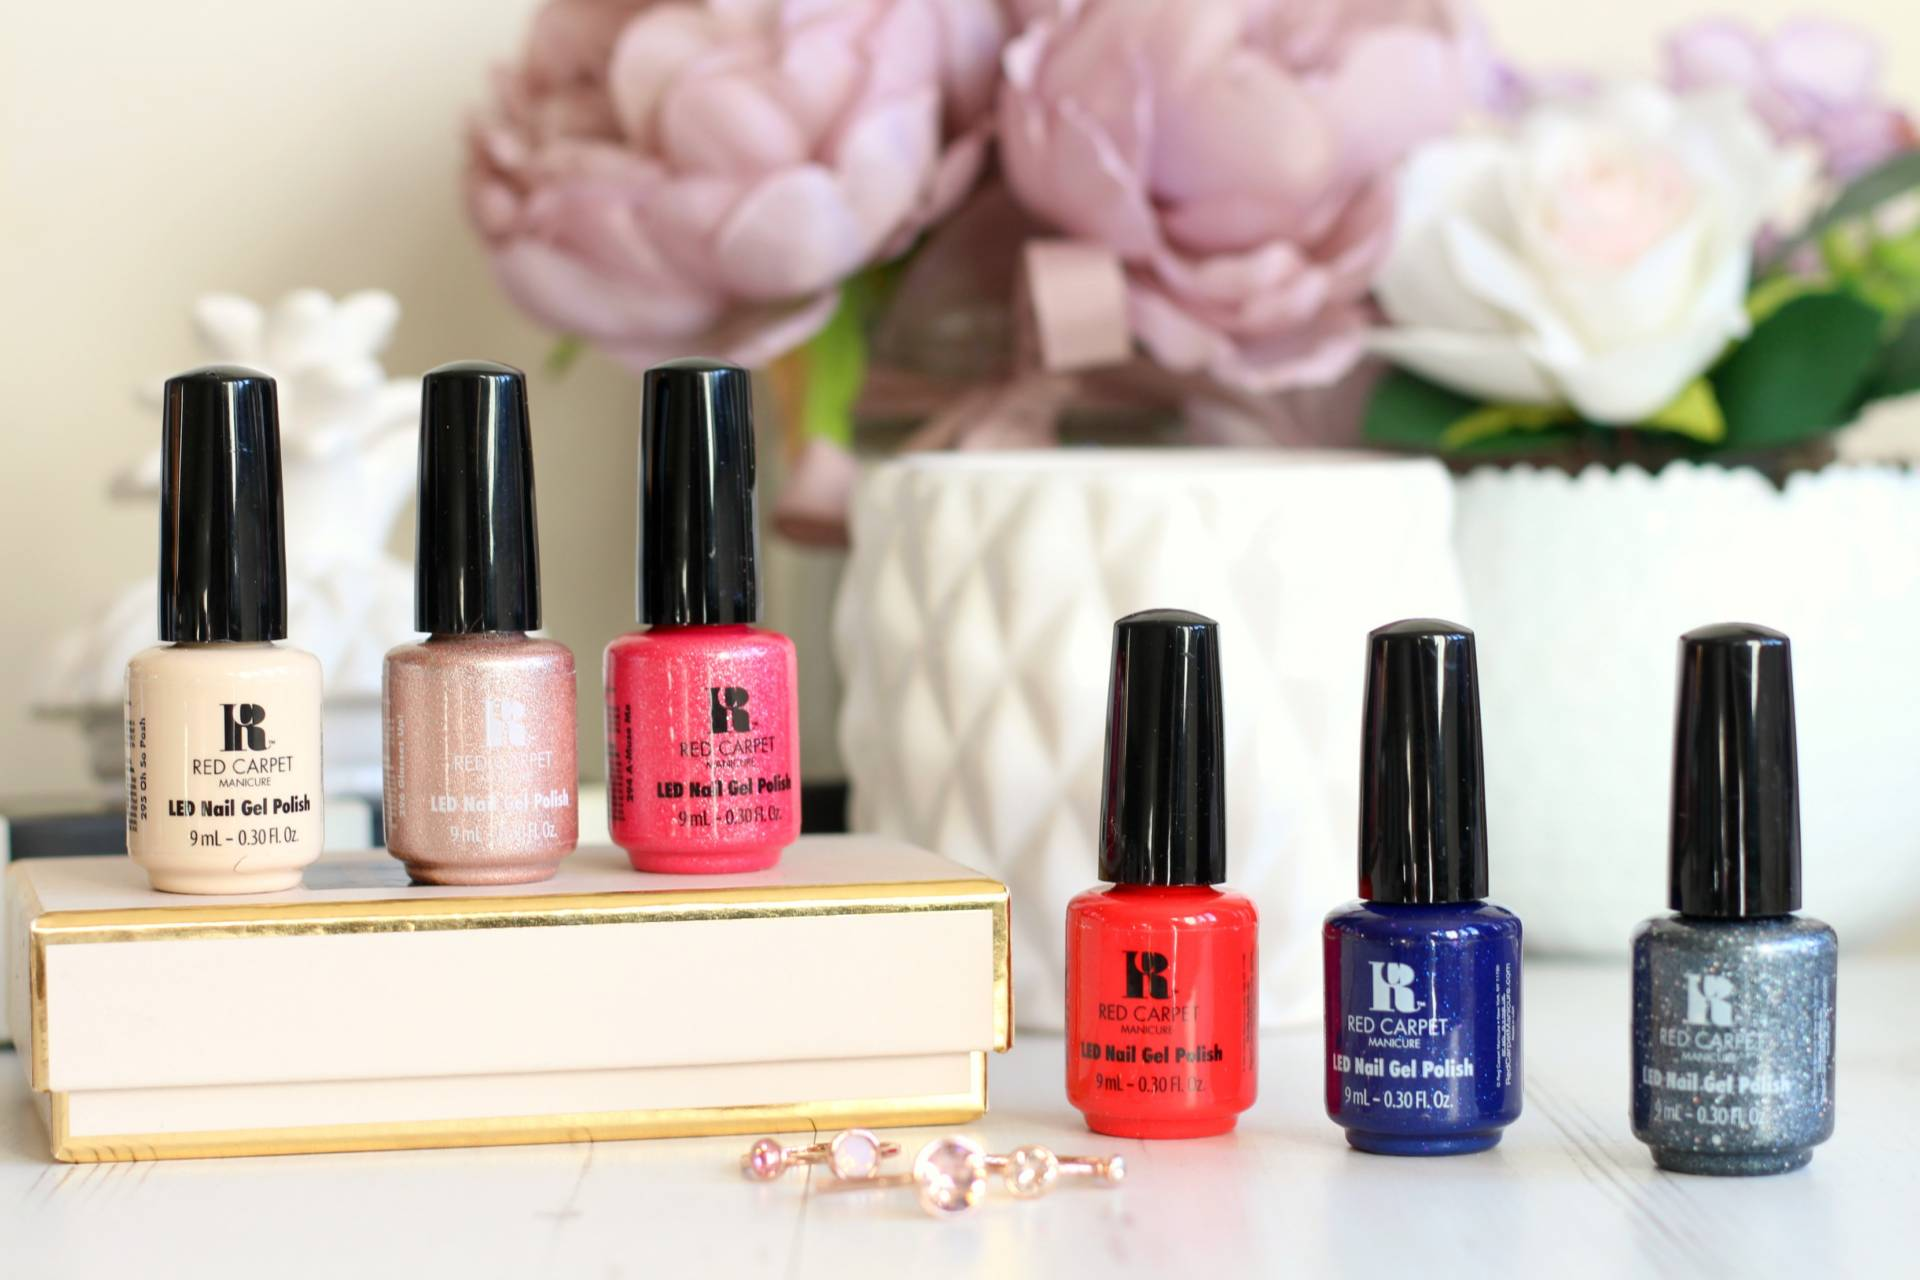 Red Carpet Manicure It's A Luxe Life Holiday Collection 2016